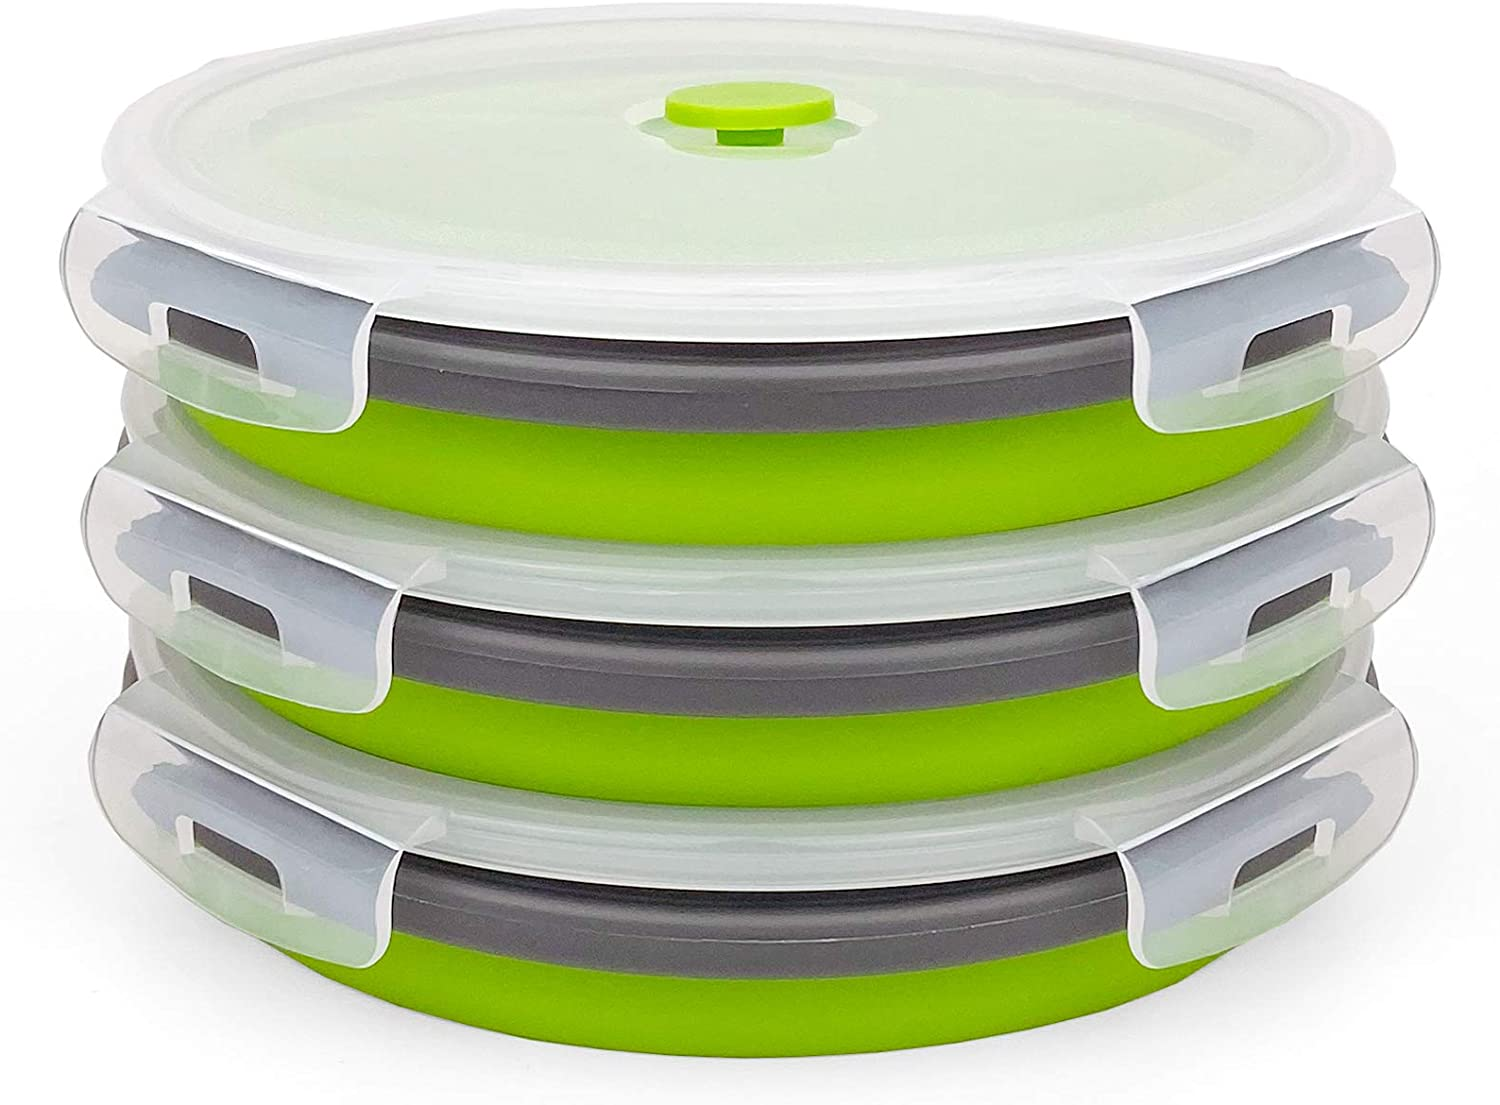 CARTINTS 1200ml Large Collapsible Meal Prep Containers, Reusable Silicone Food Storage Containers, Stackable Fridge Storage Containers, With Leakproof Lids, Microwave and Freezer Safe, Green